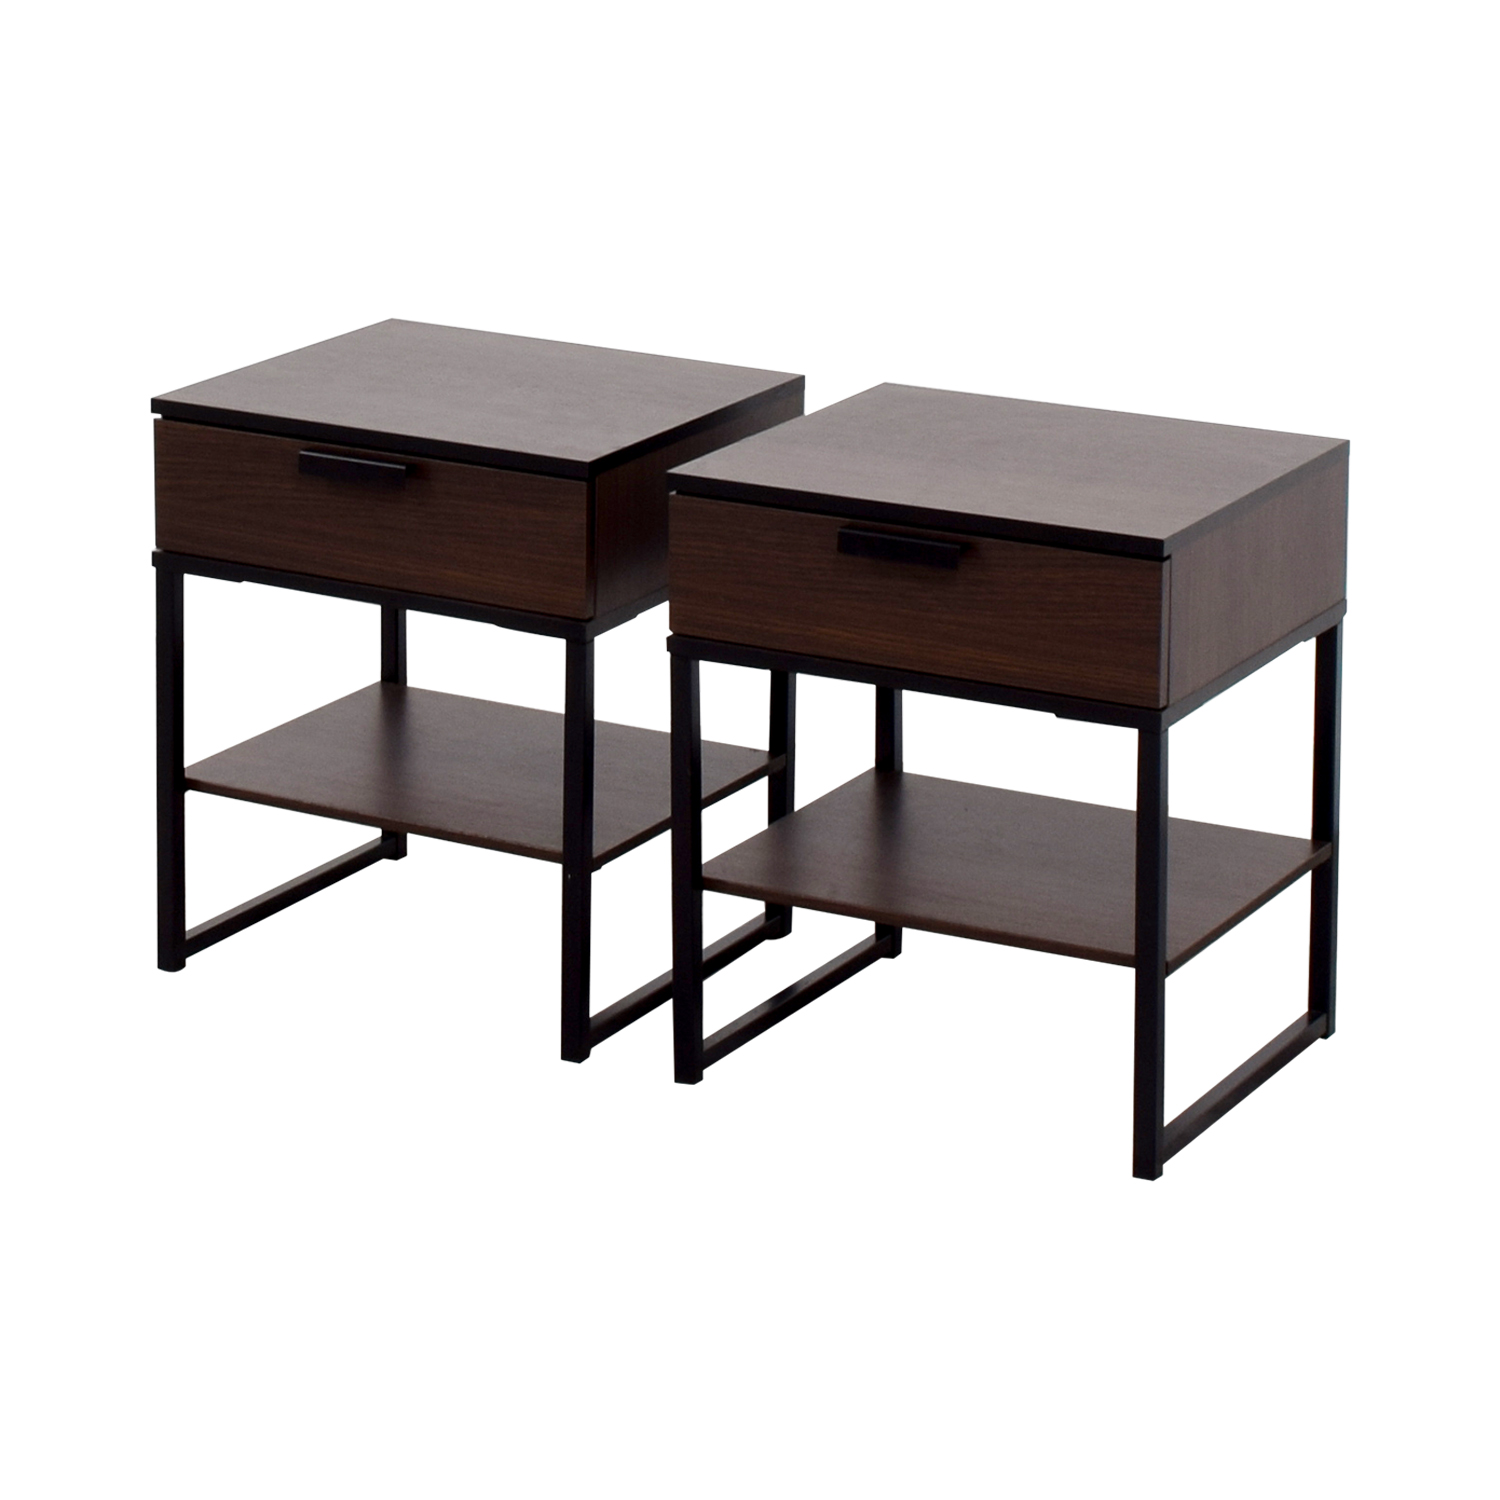 IKEA IKEA Modern End Tables for sale